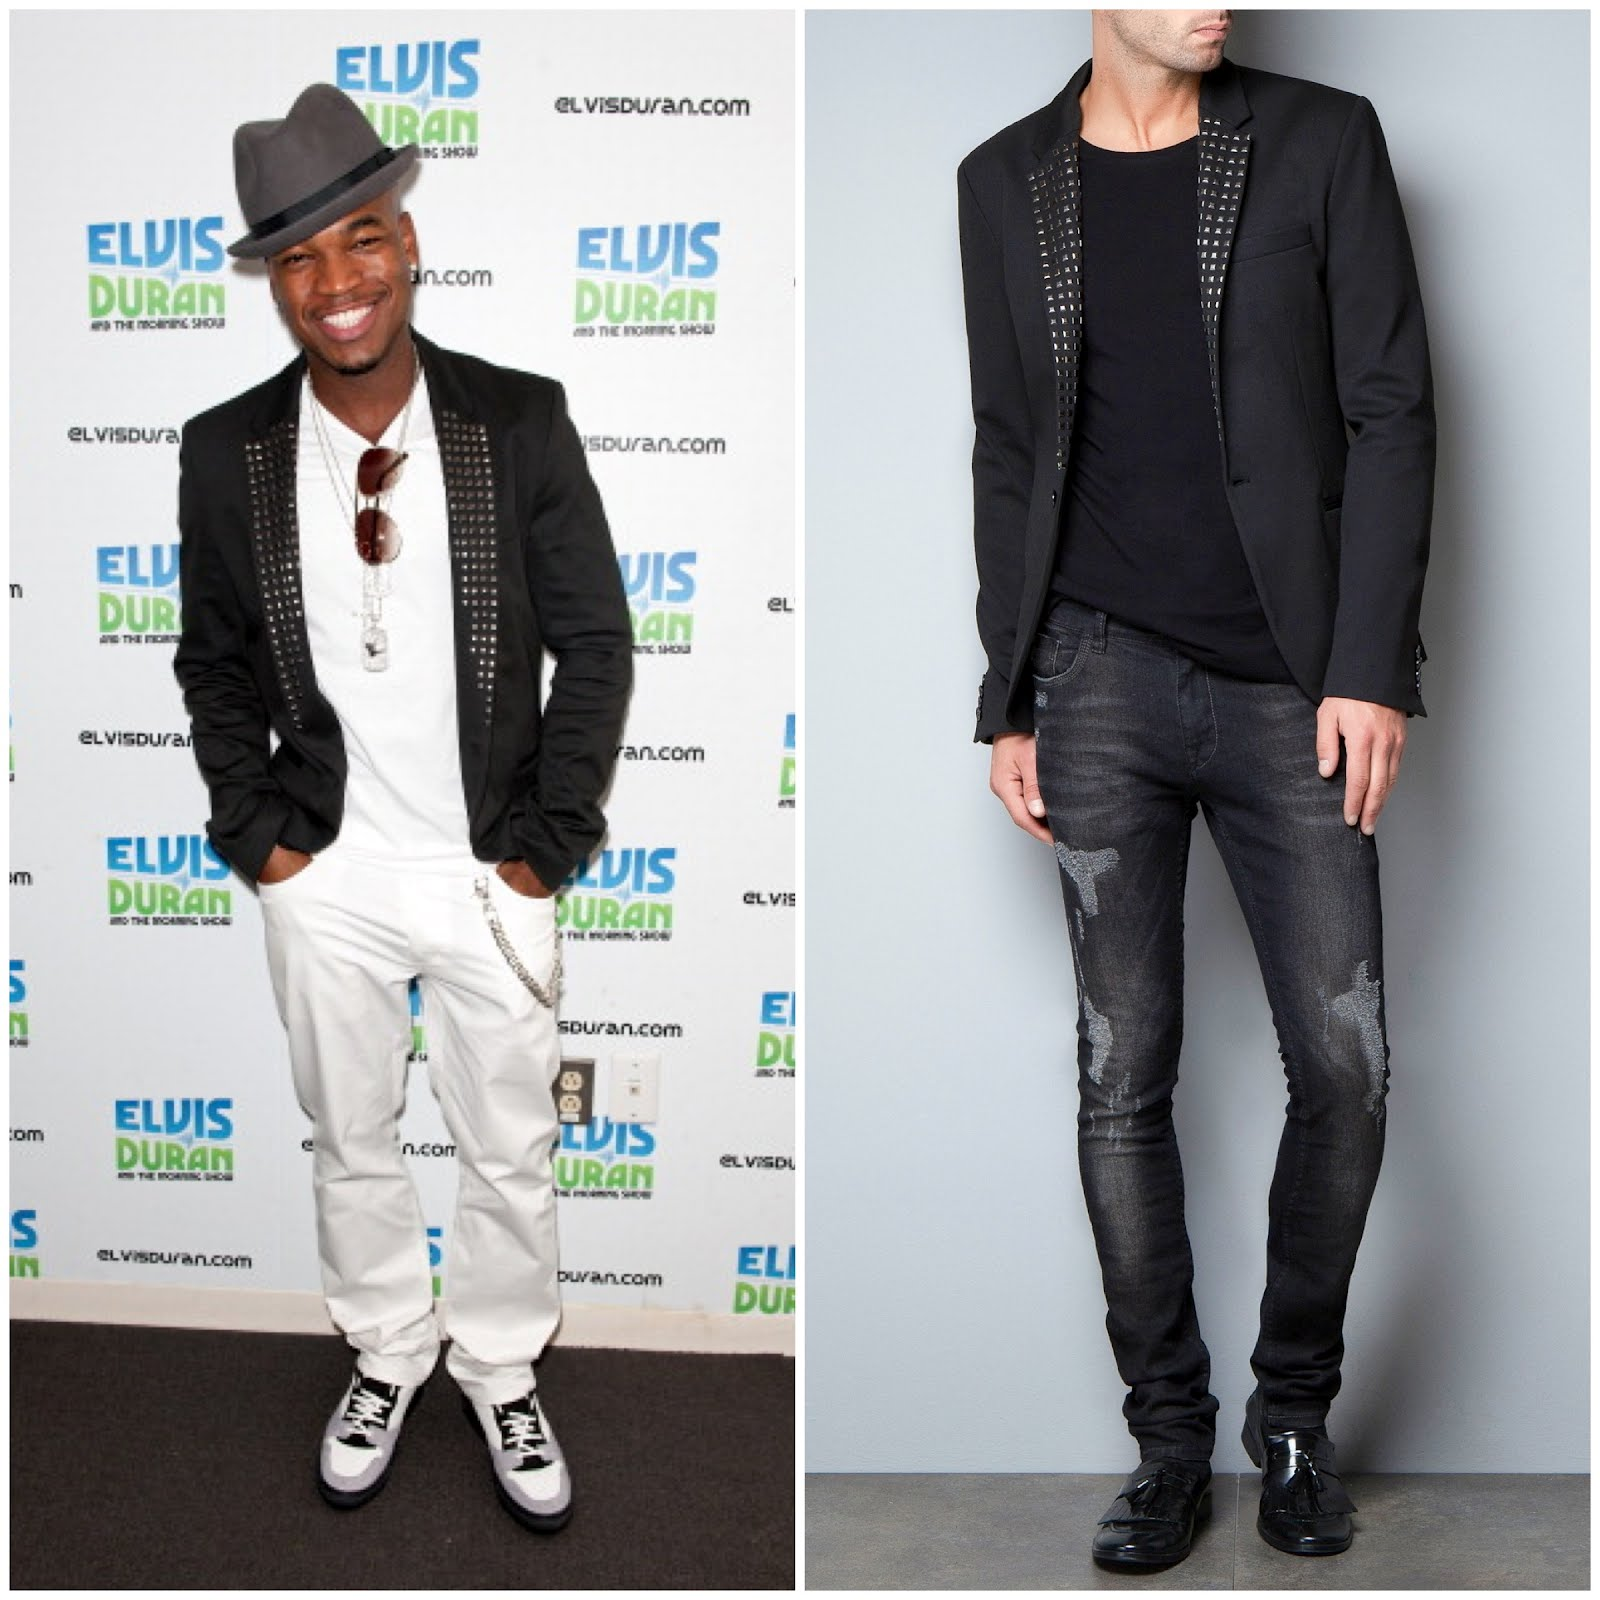 Ne-Yo visits The Elvis Duran Z100 Morning Show at the Z100 Studio on August 2, 2012 in New York City. Zara Blazer and Balenciaga shoes